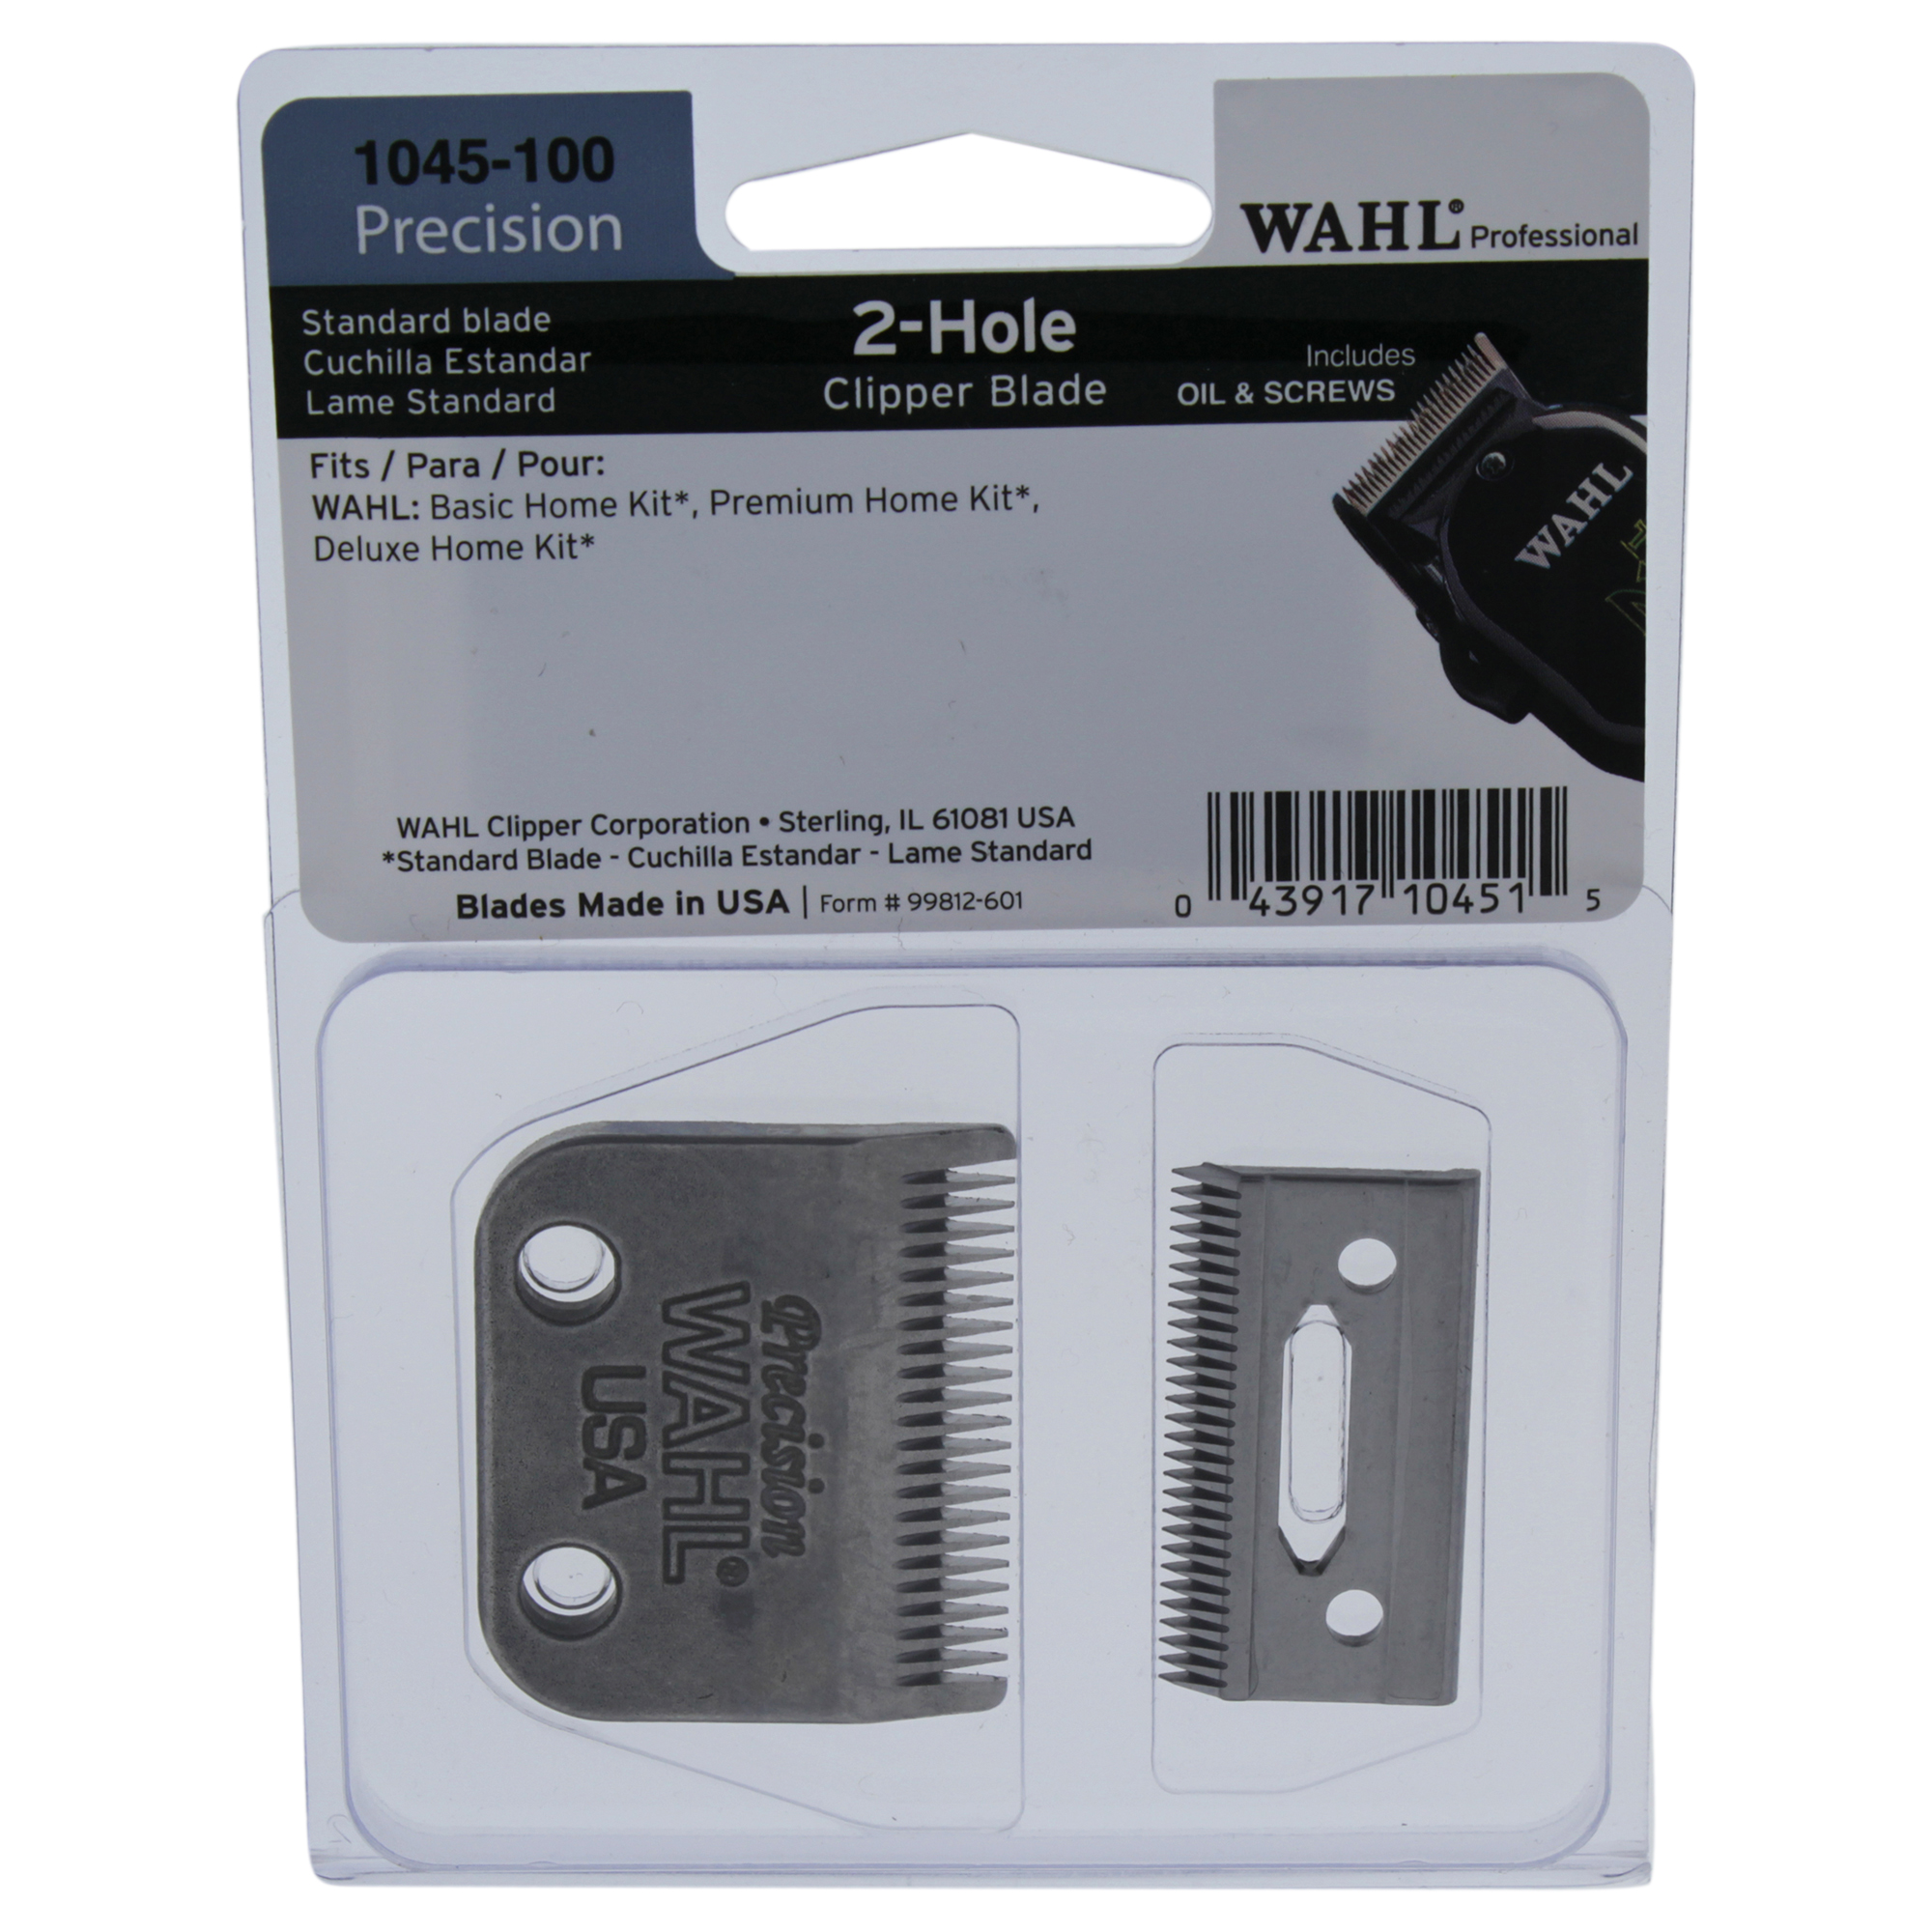 WAHL Professional 2-Hole Precision Clipper Blade - Model # 1045-100 - 1 Pc Clipper Blade